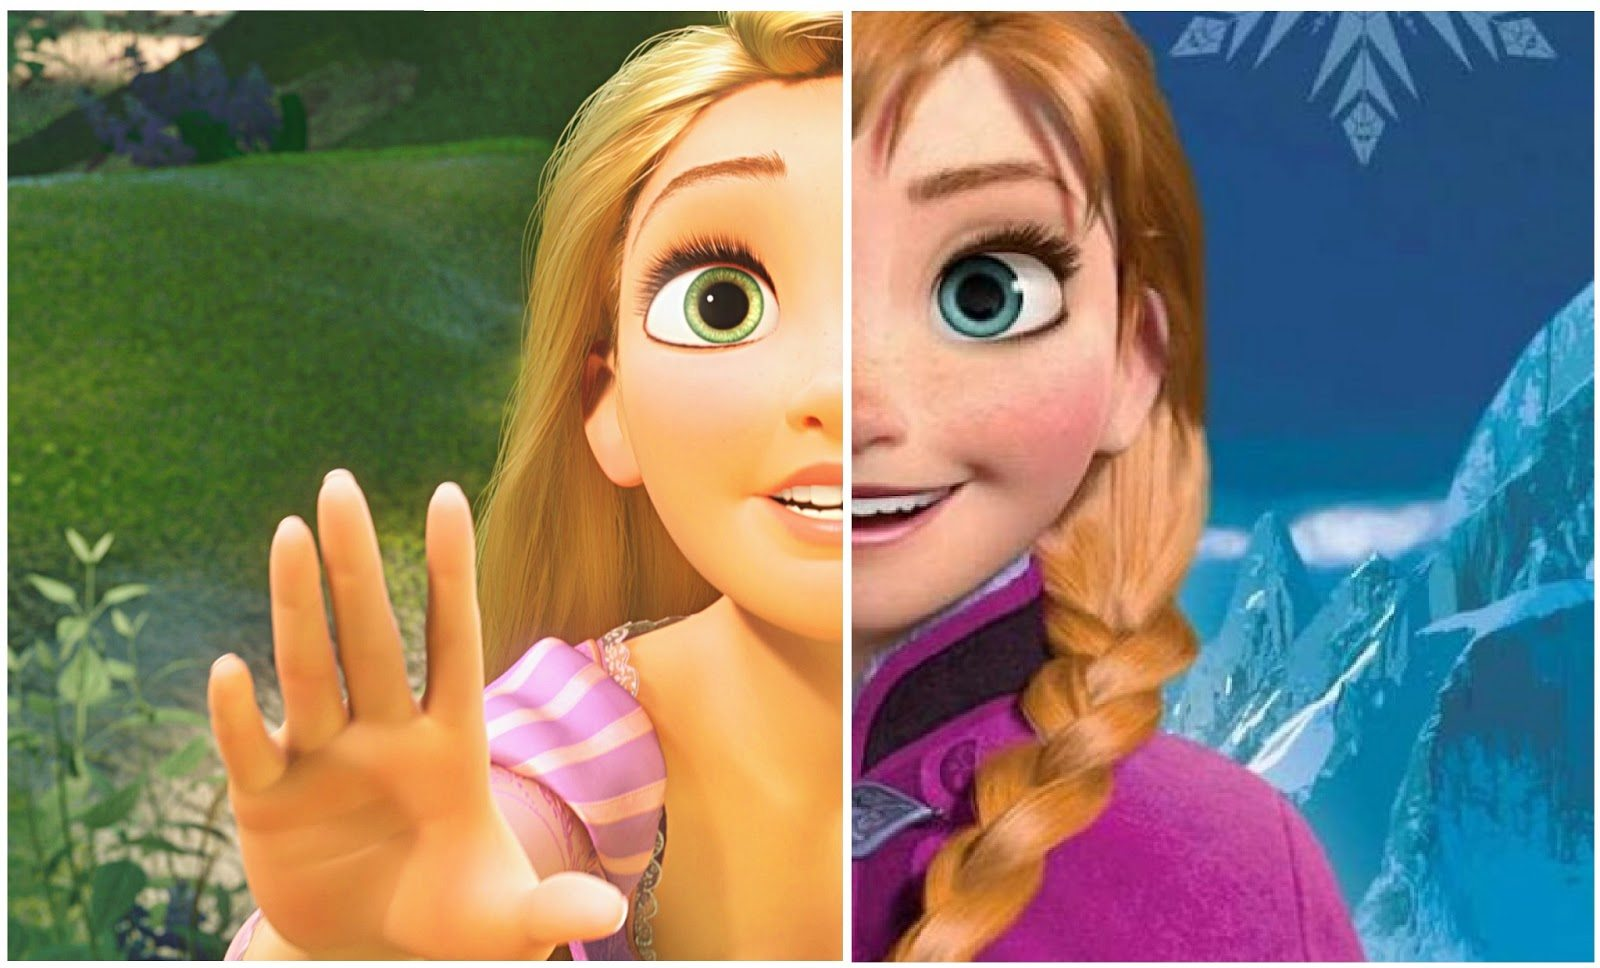 Indisputable Proof That 'Frozen' And 'Tangled' Exist In The Same Universe